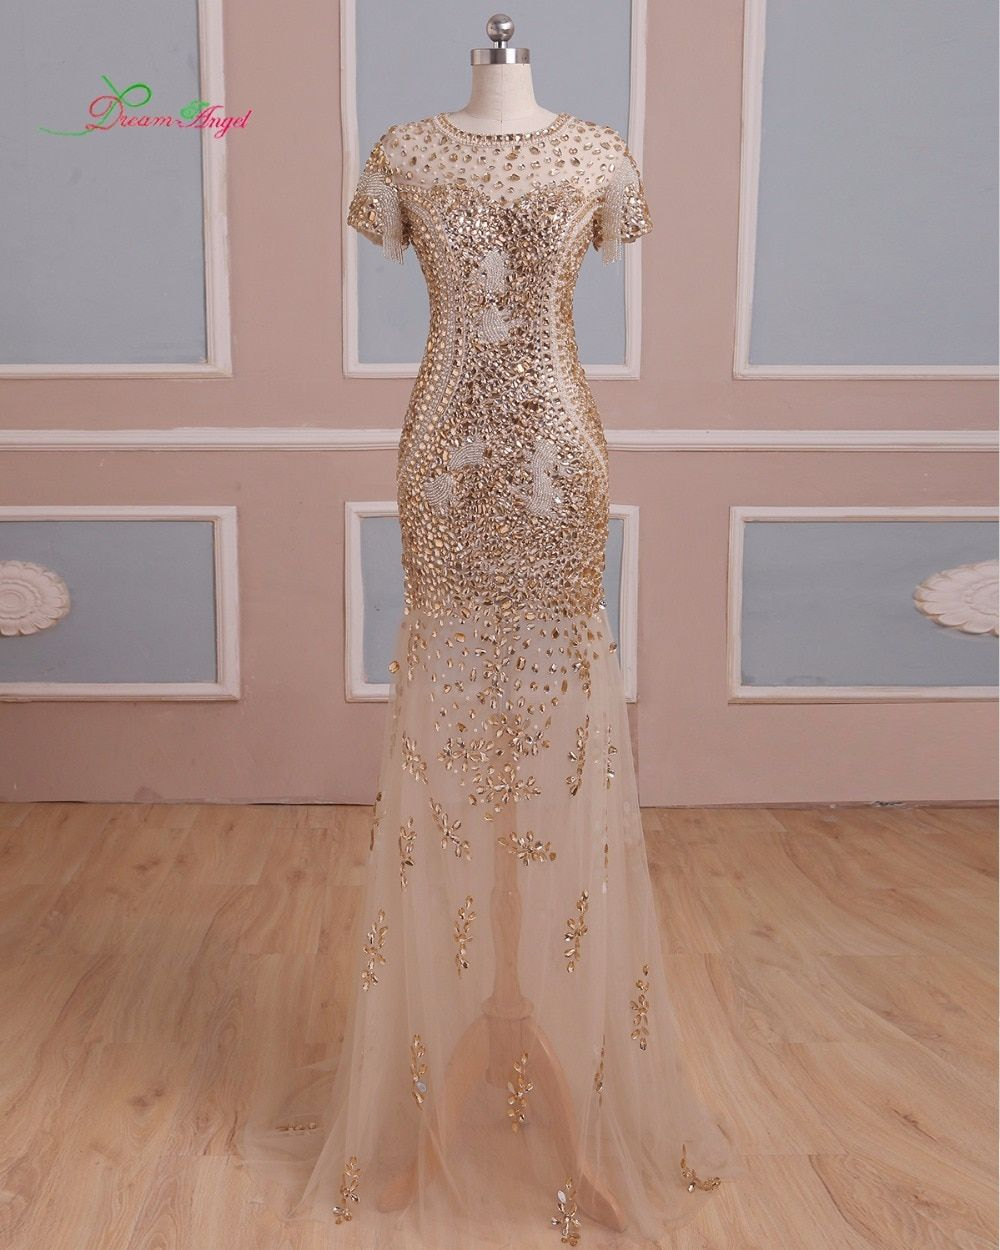 Dream Angel Elegant Beading Crystal Long Mermaid Prom Dresses 2018 Luxury Sweep Train Vintage Trumpet Vestido De Festa Plus Size